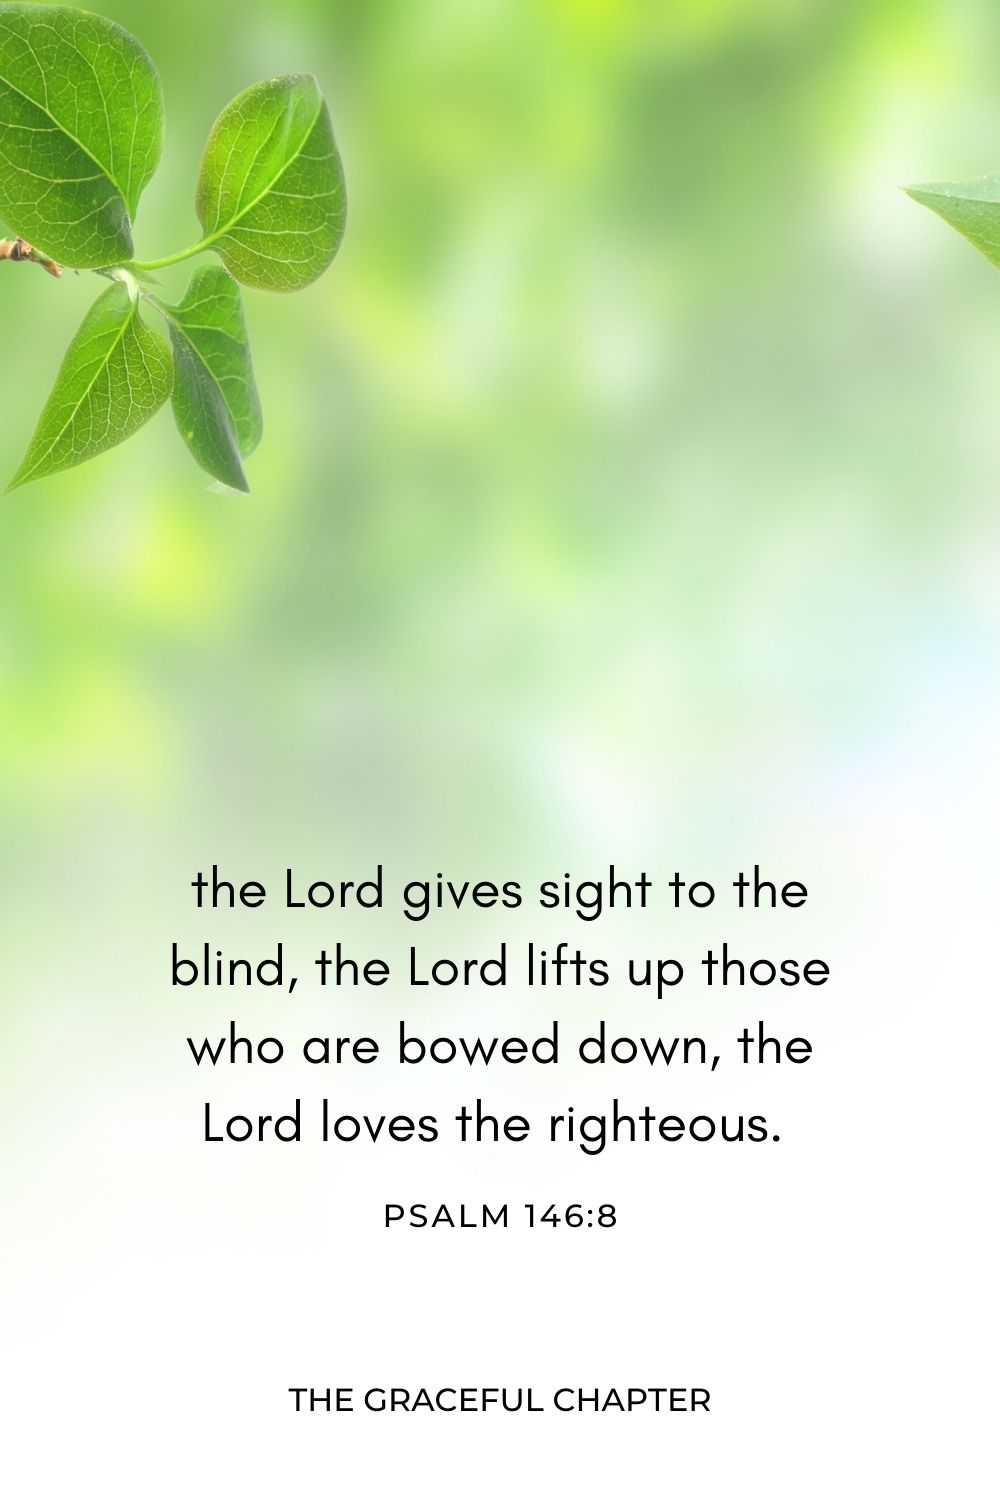 The Lord gives sight to the blind, the Lord lifts up those who are bowed down, the Lord loves the righteous. Psalm 146:8